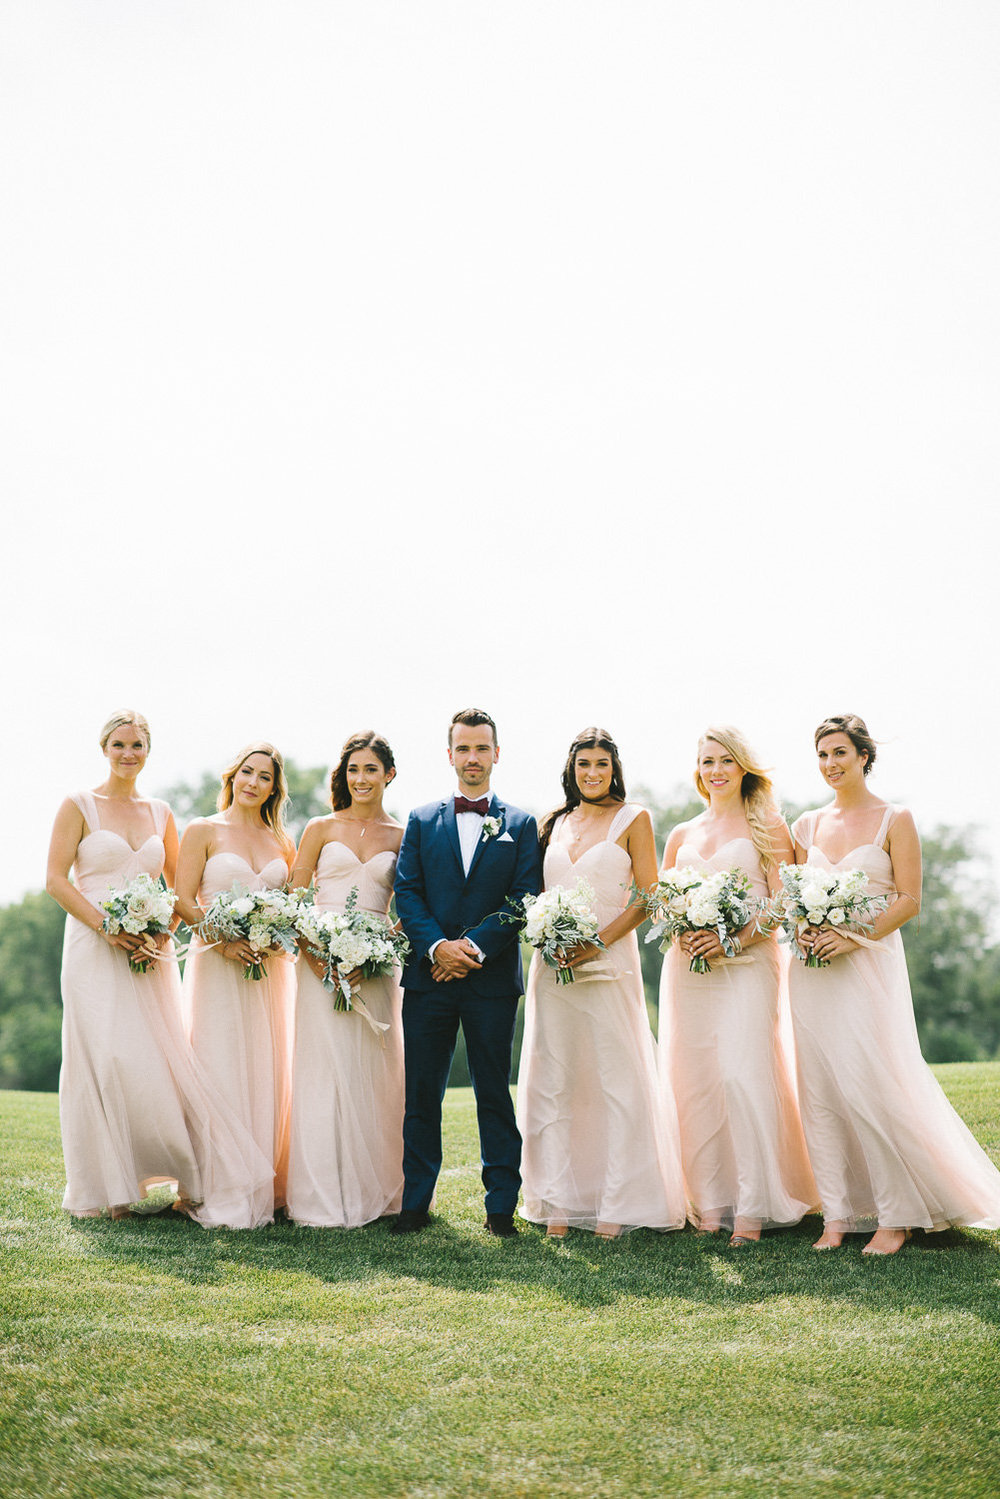 Blush Bridesmaid Dresses - Winnipeg Wedding florist